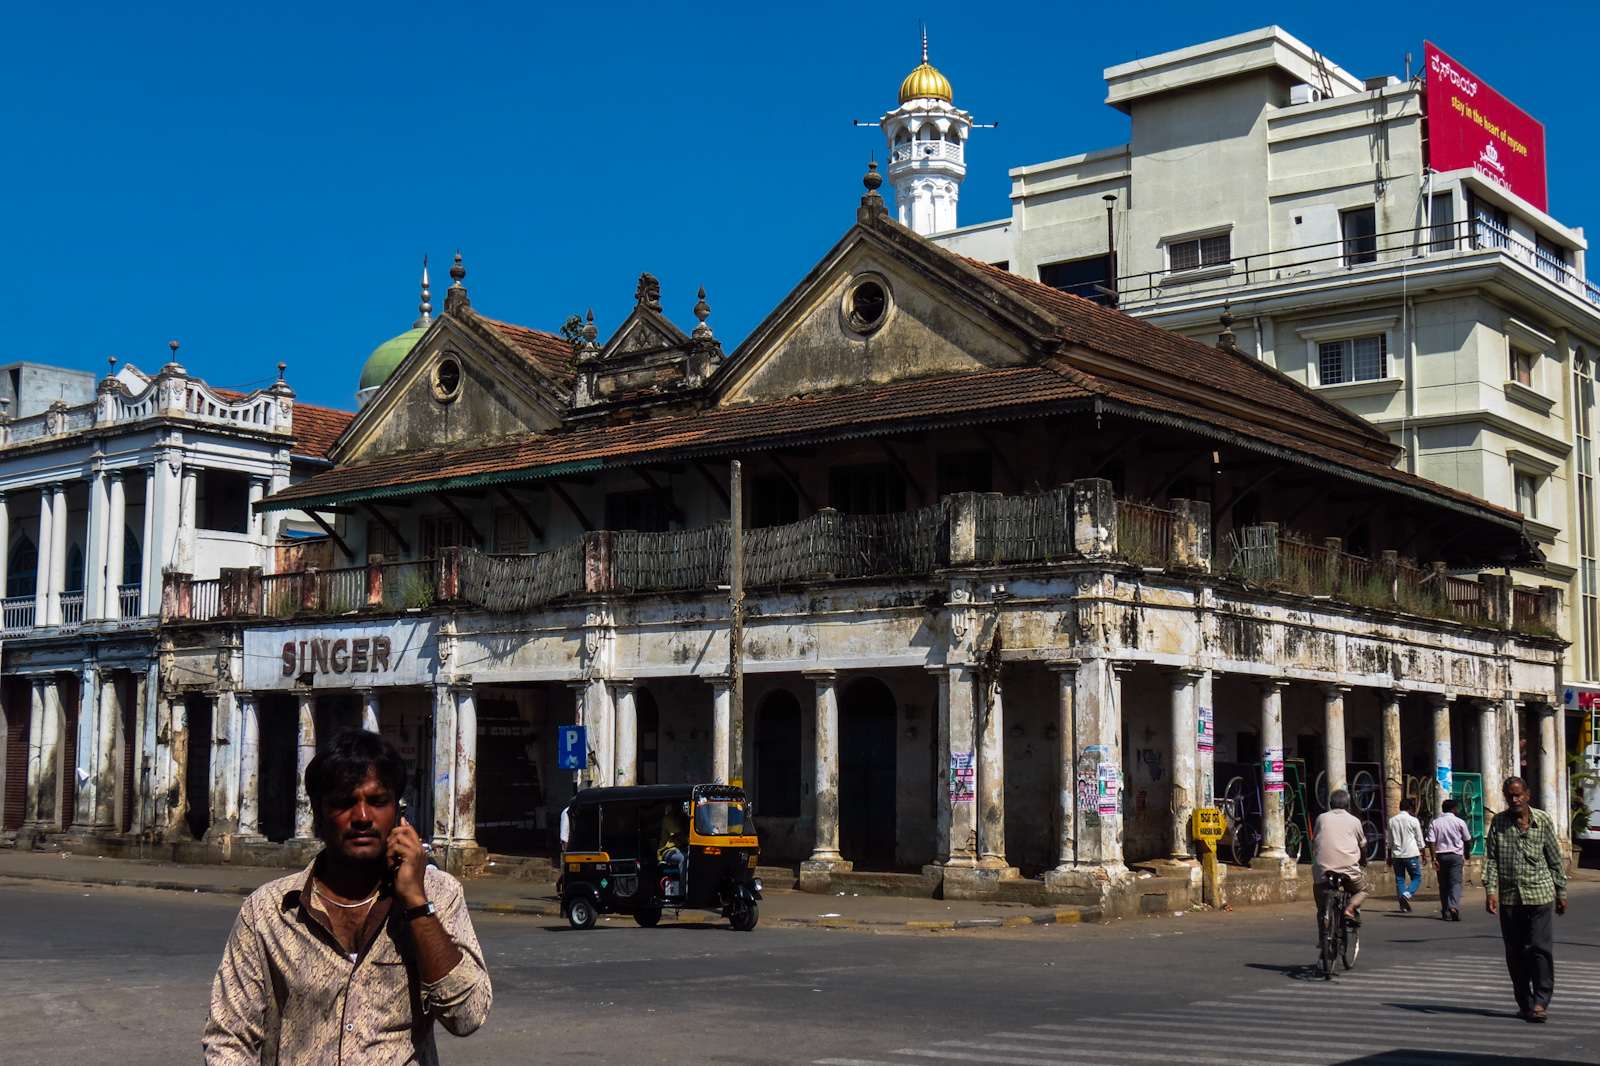 singer-building-mysore-india